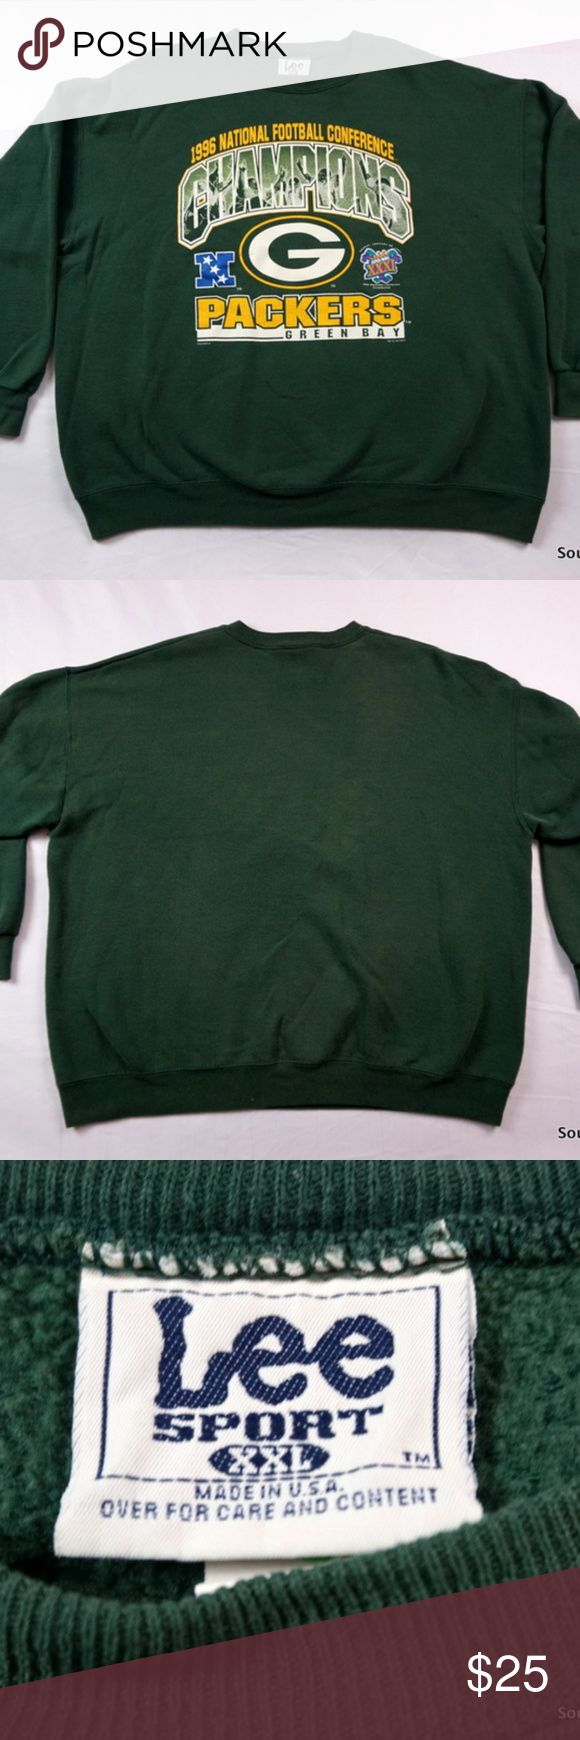 """VTG Green Bay Packers Super Bowl XXXI Sweatshirt Vintage Green Bay Packers Sweatshirt, Adult XXL, 2XL, 1996 Super Bowl Green Bay Packers Crew Sweatshirt, Packers Sweatshirt, 90s Fashion  Brand:     Lee Sports Size:       Men's XXL, 2XL Color:      Green / Yellow Material: 50% Cotton, 50% Polyester  Made in the USA!  Detailed Measurements: (Front Side of Garment has been measured laying flat on a table)  Sleeves:..............22"""" inches  Chest:.................30"""" inches Length:……"""